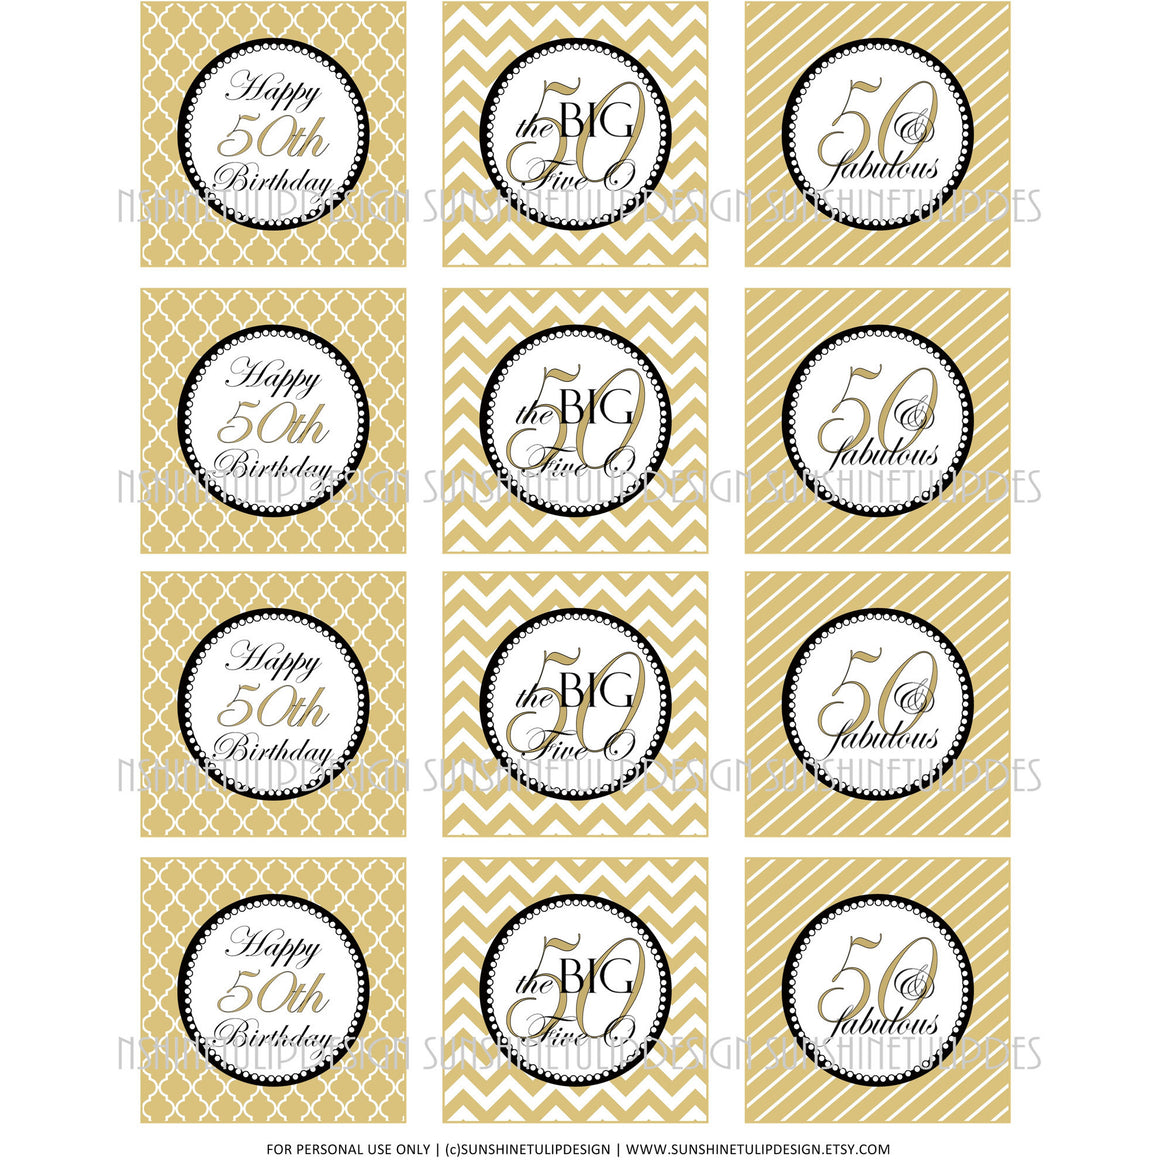 Printable 50th Birthday Cupcake Toppers, Sticker Labels & Party Favor Tags - Sunshinetulipdesign